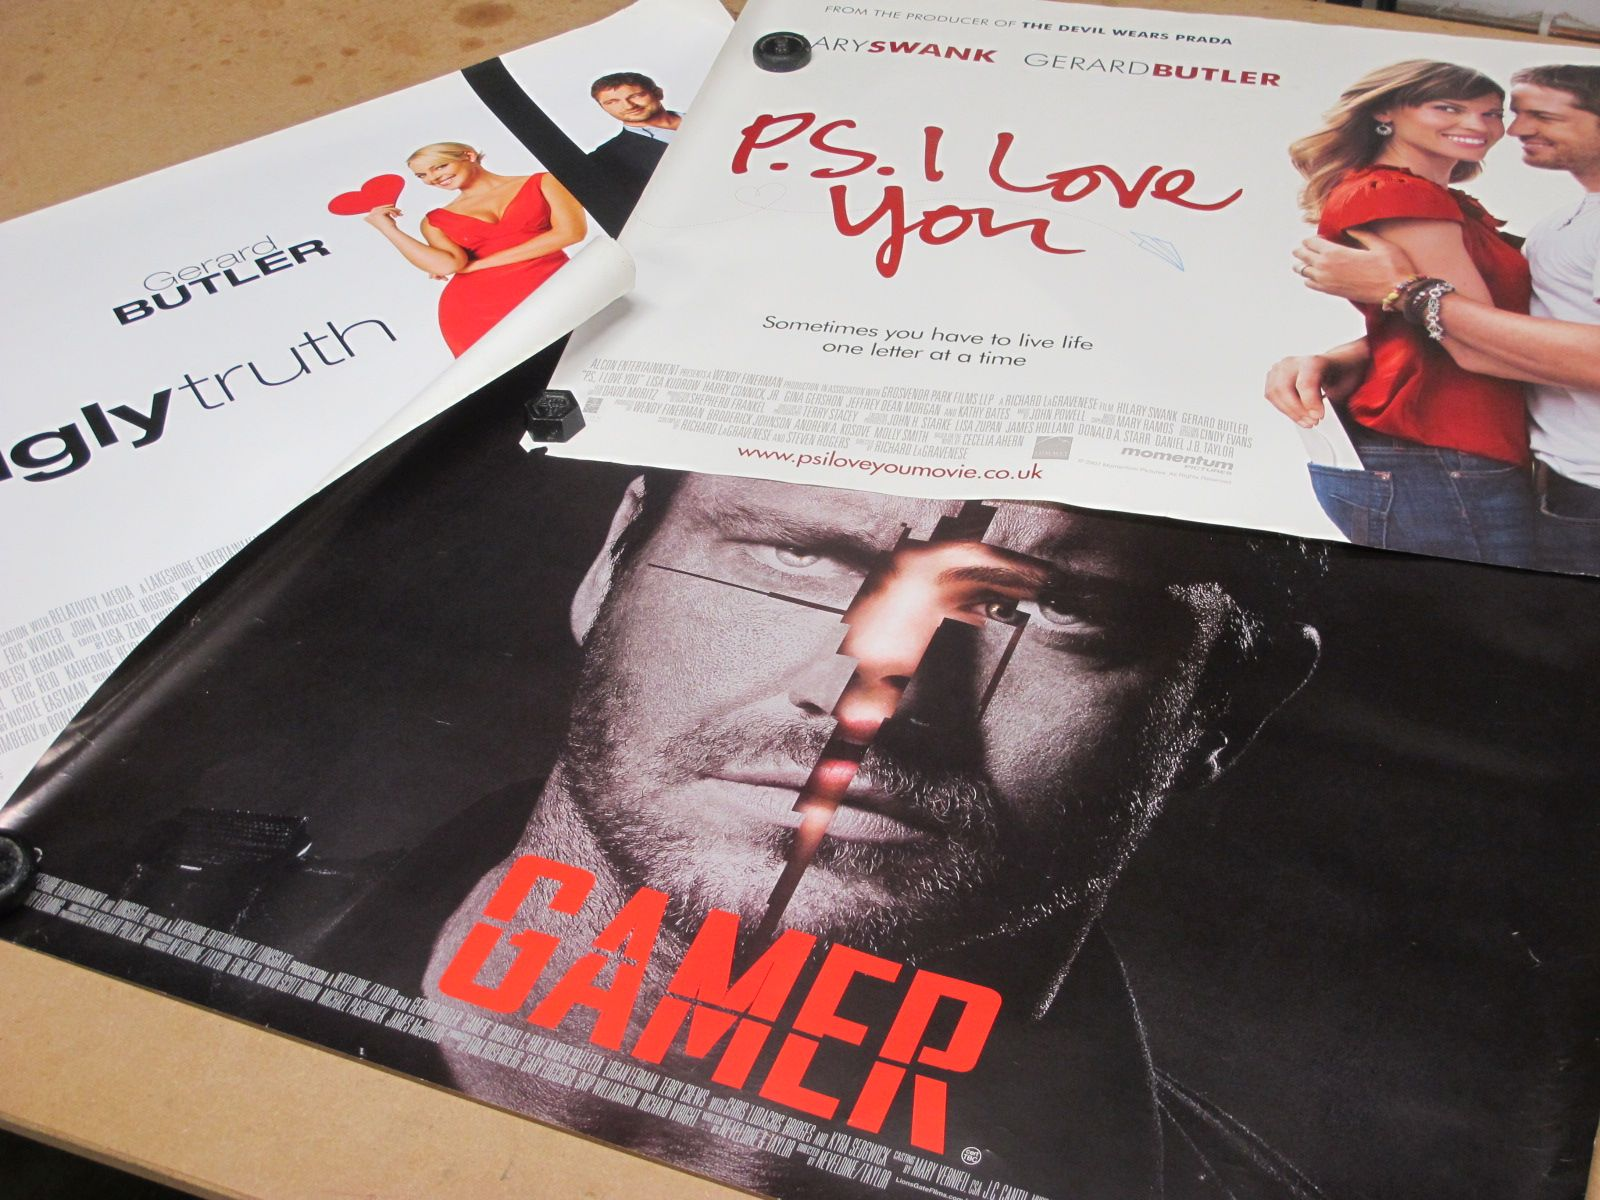 Gerrard Butler Film Posters - 'P.S. I Love You', 'The Ugly Truth', 'Gamer', 76 x 102cm (3)